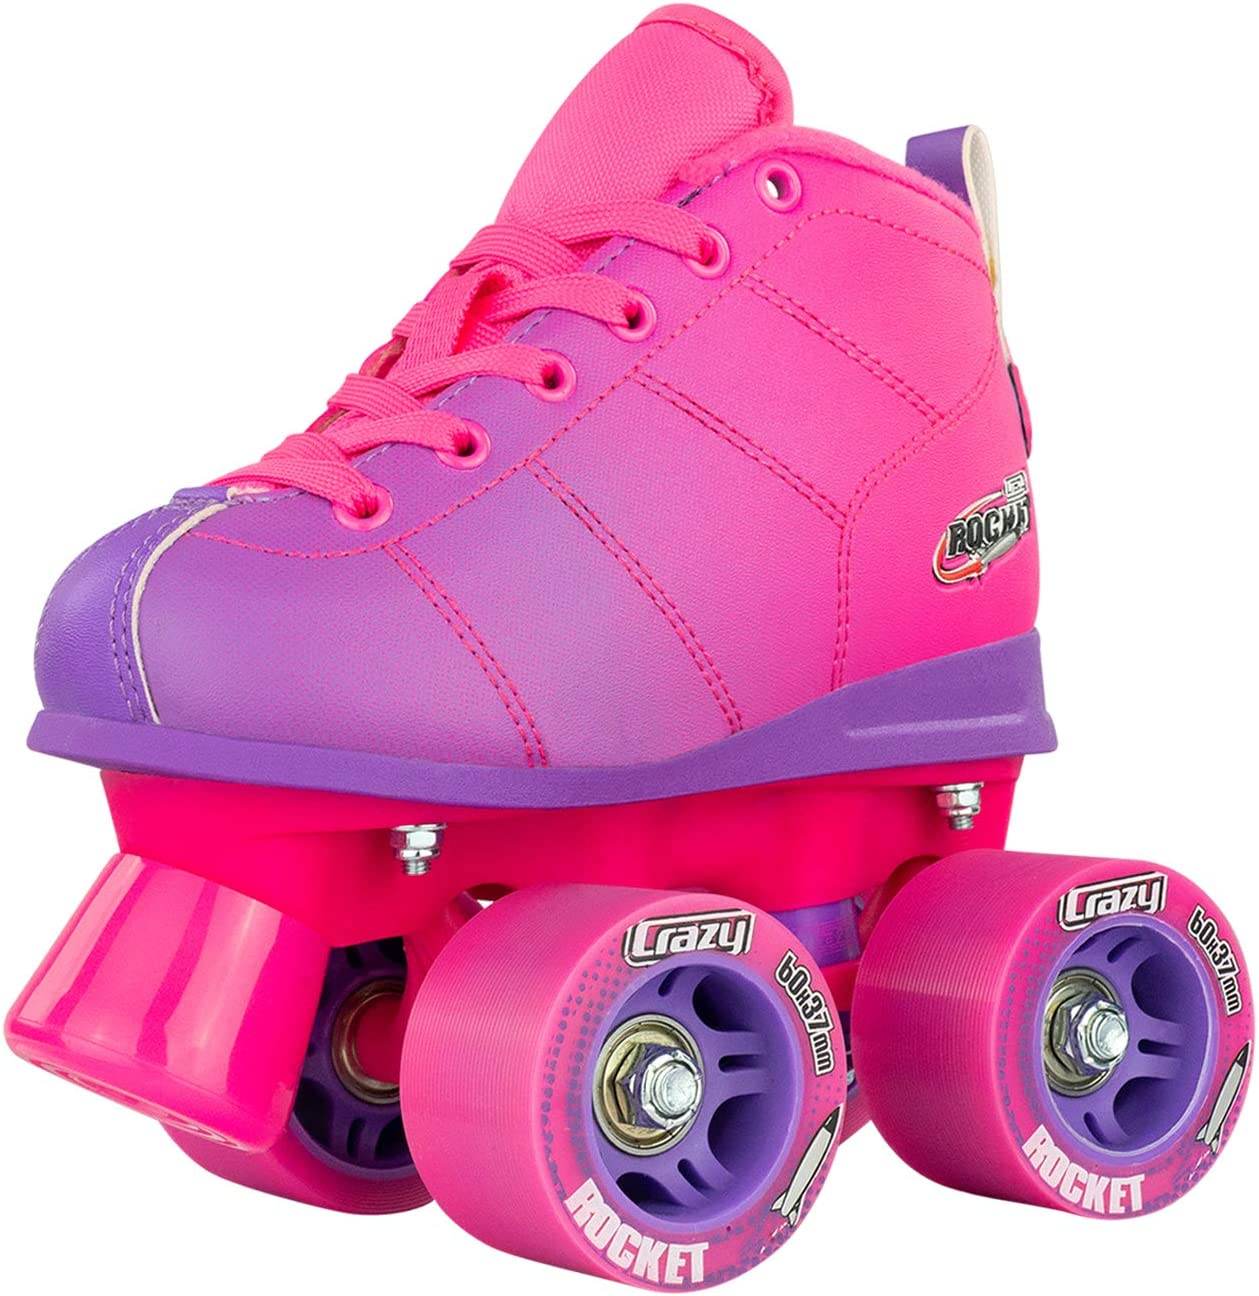 Crazy Skates Rocket Roller Skates for Girls and Boys – Great Beginner Kids Quad Skates – Available in Two